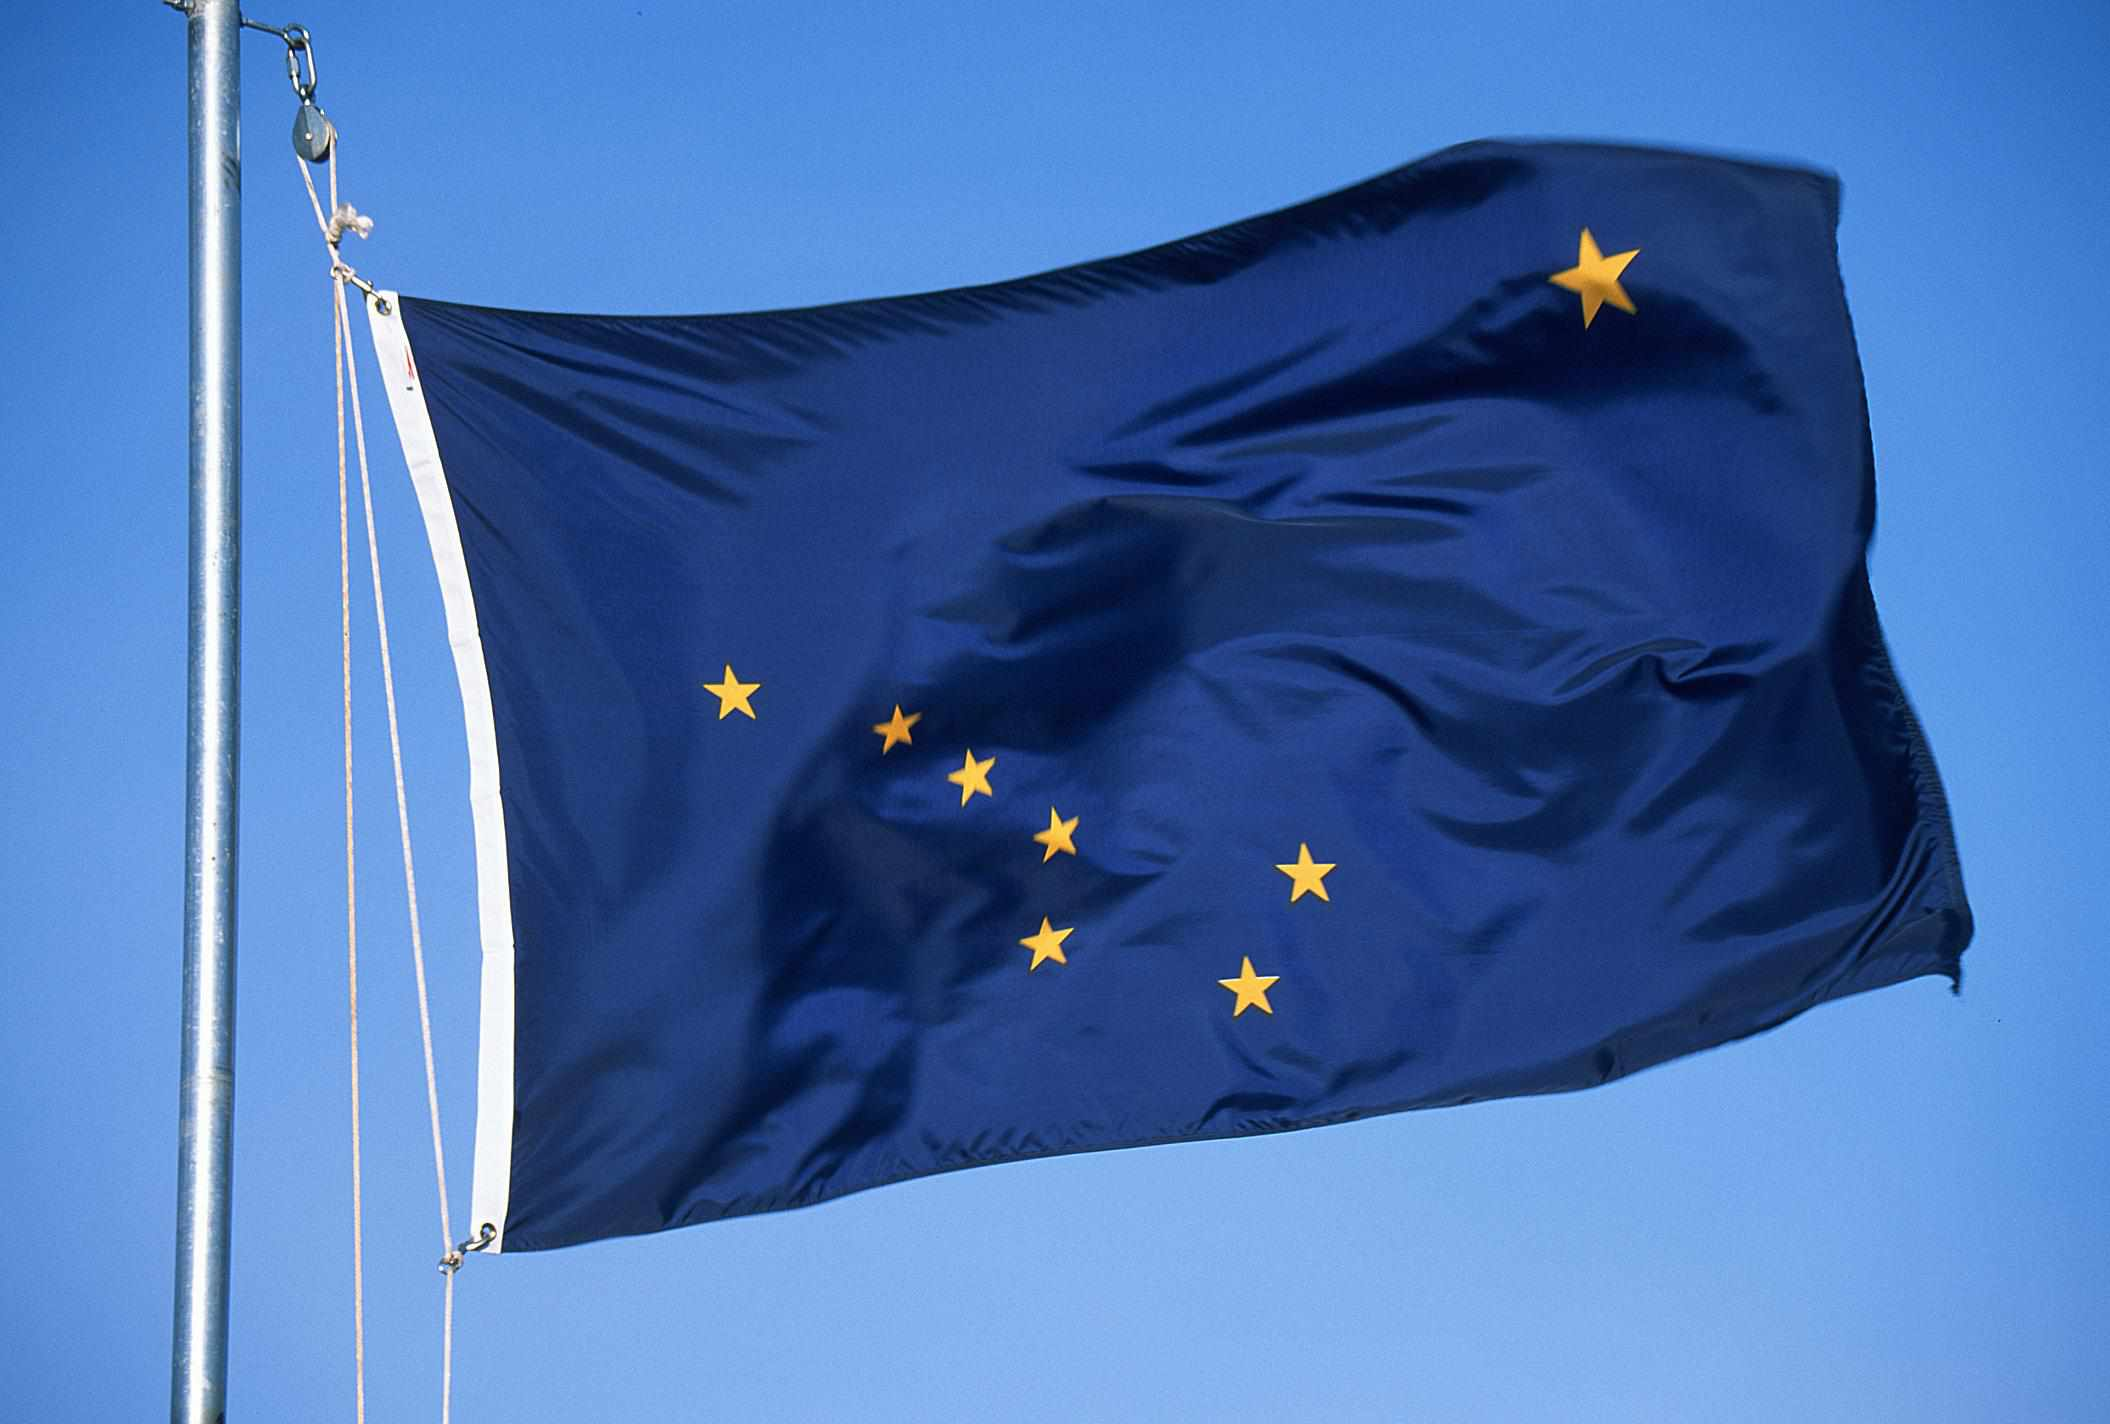 Alaska flag - Fotosearch - GettyImages-124279858